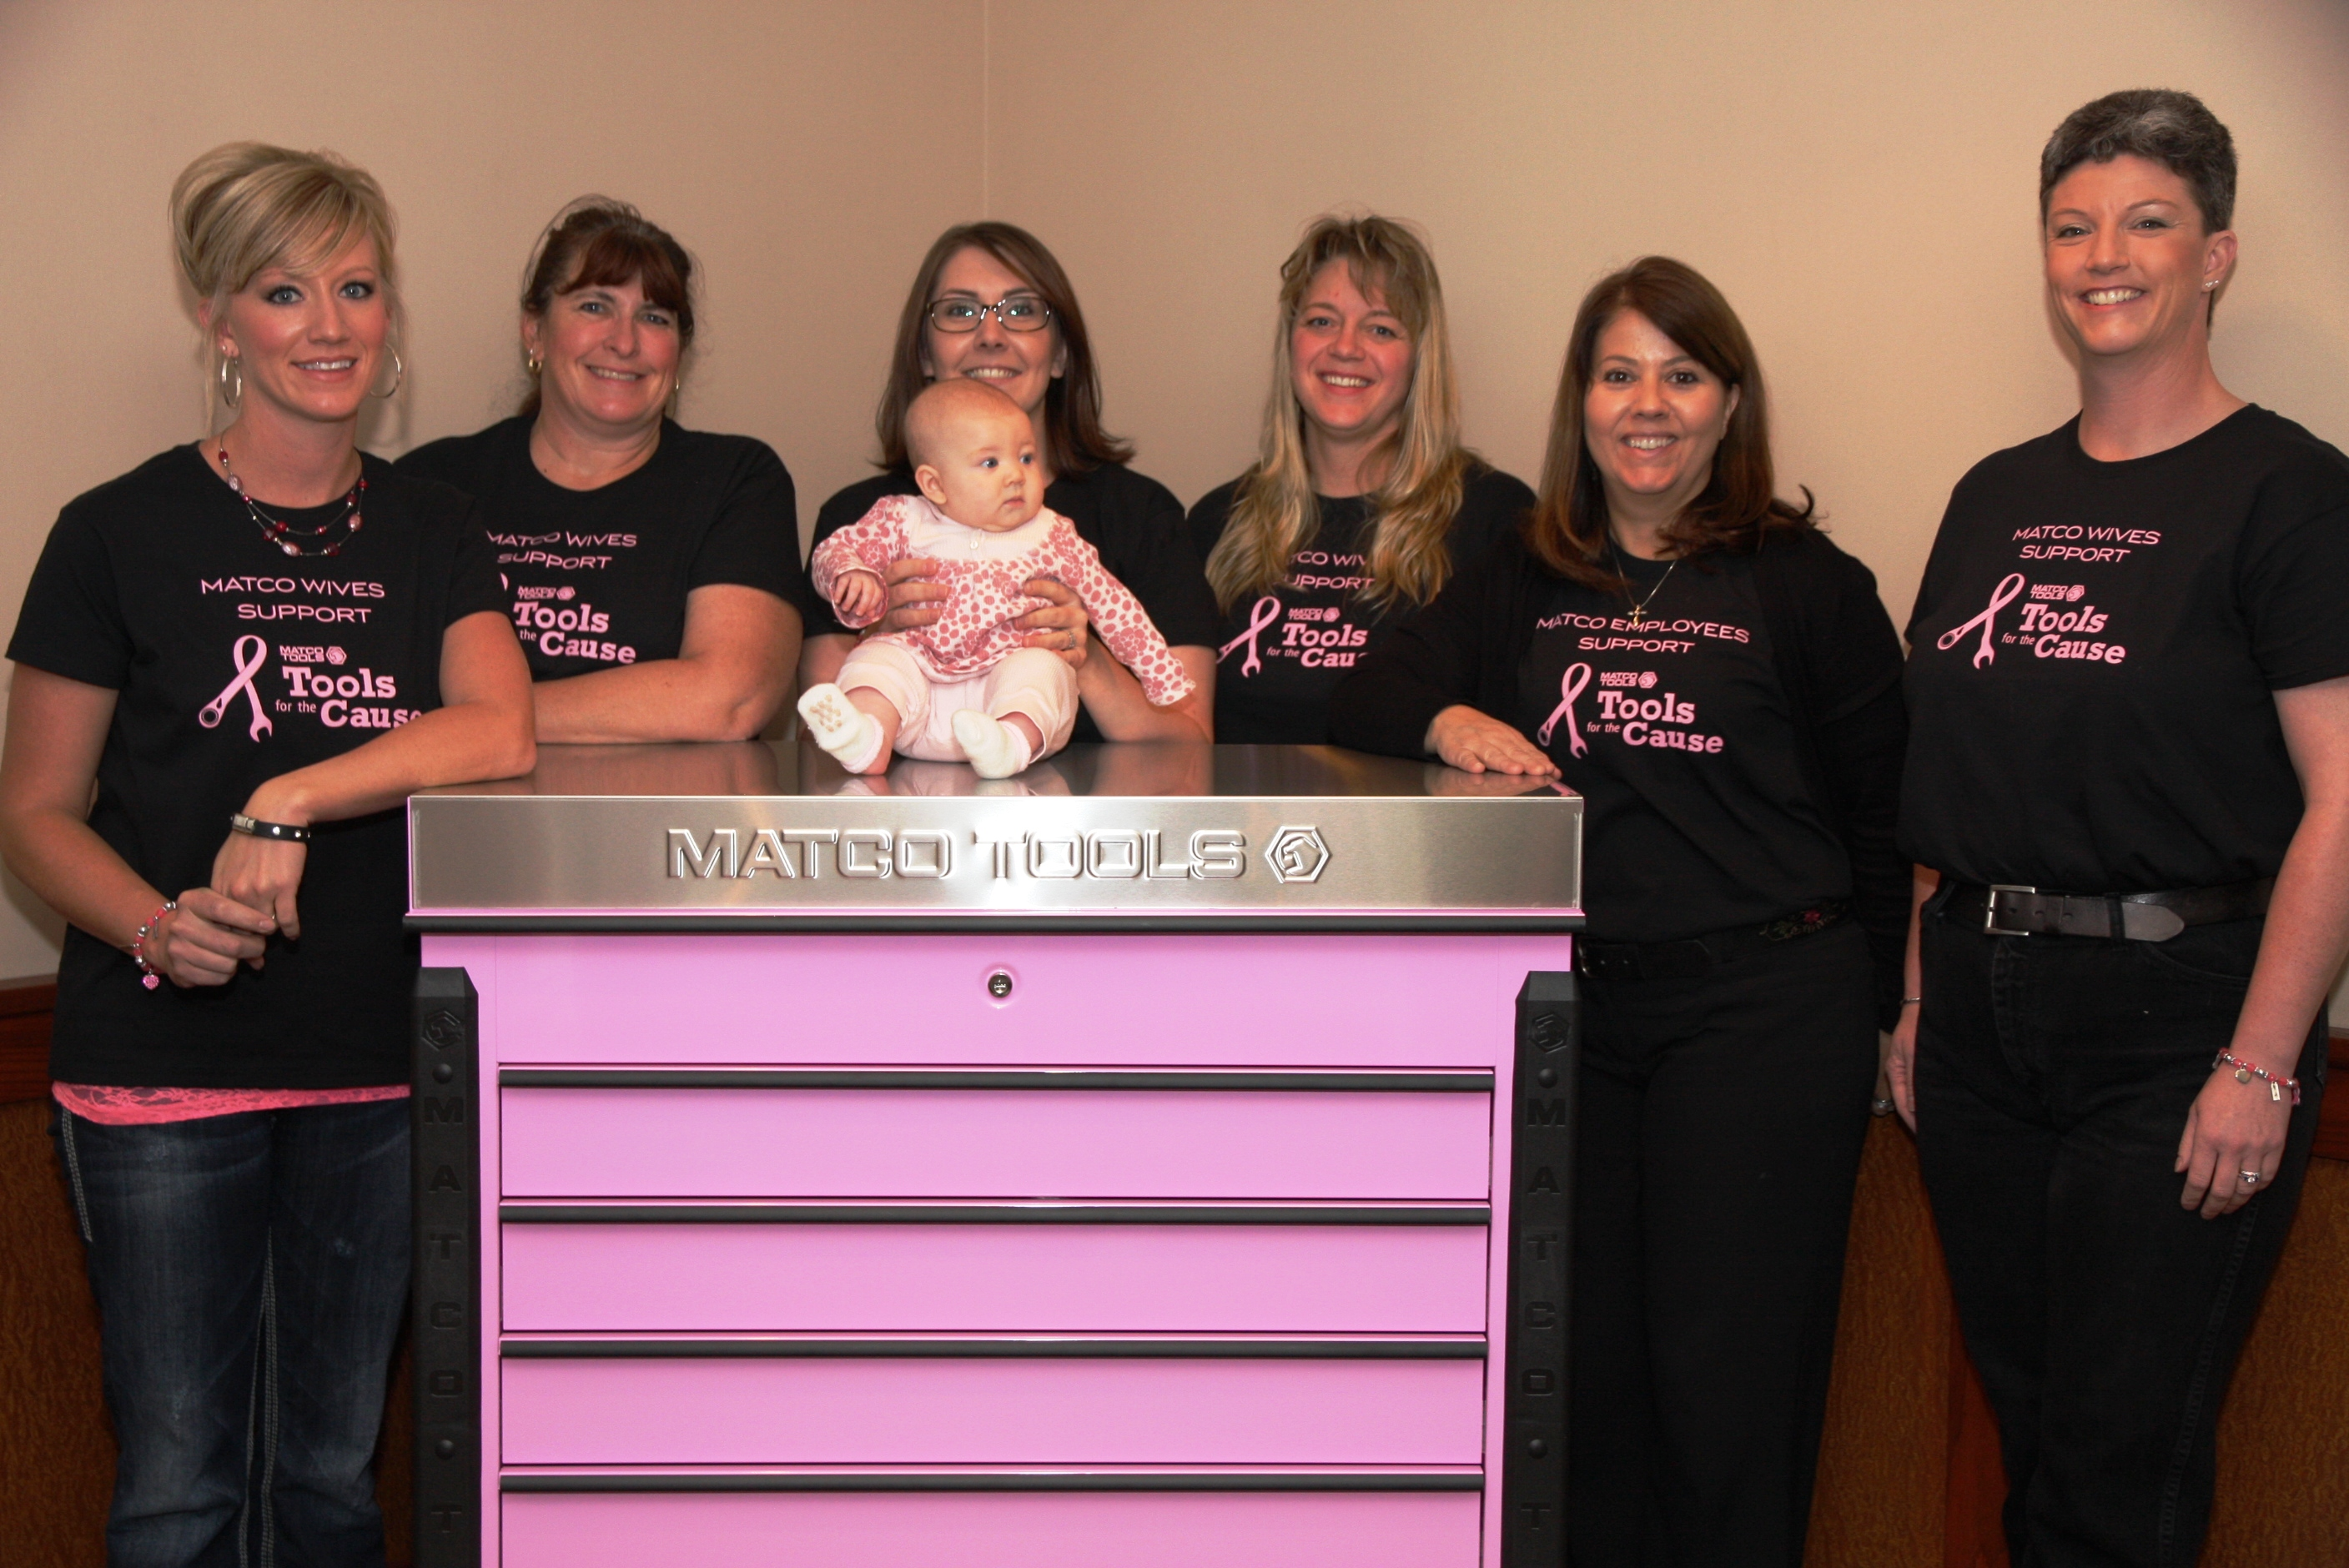 Custom T-Shirts for Matco Wives Support Tools For The Cause